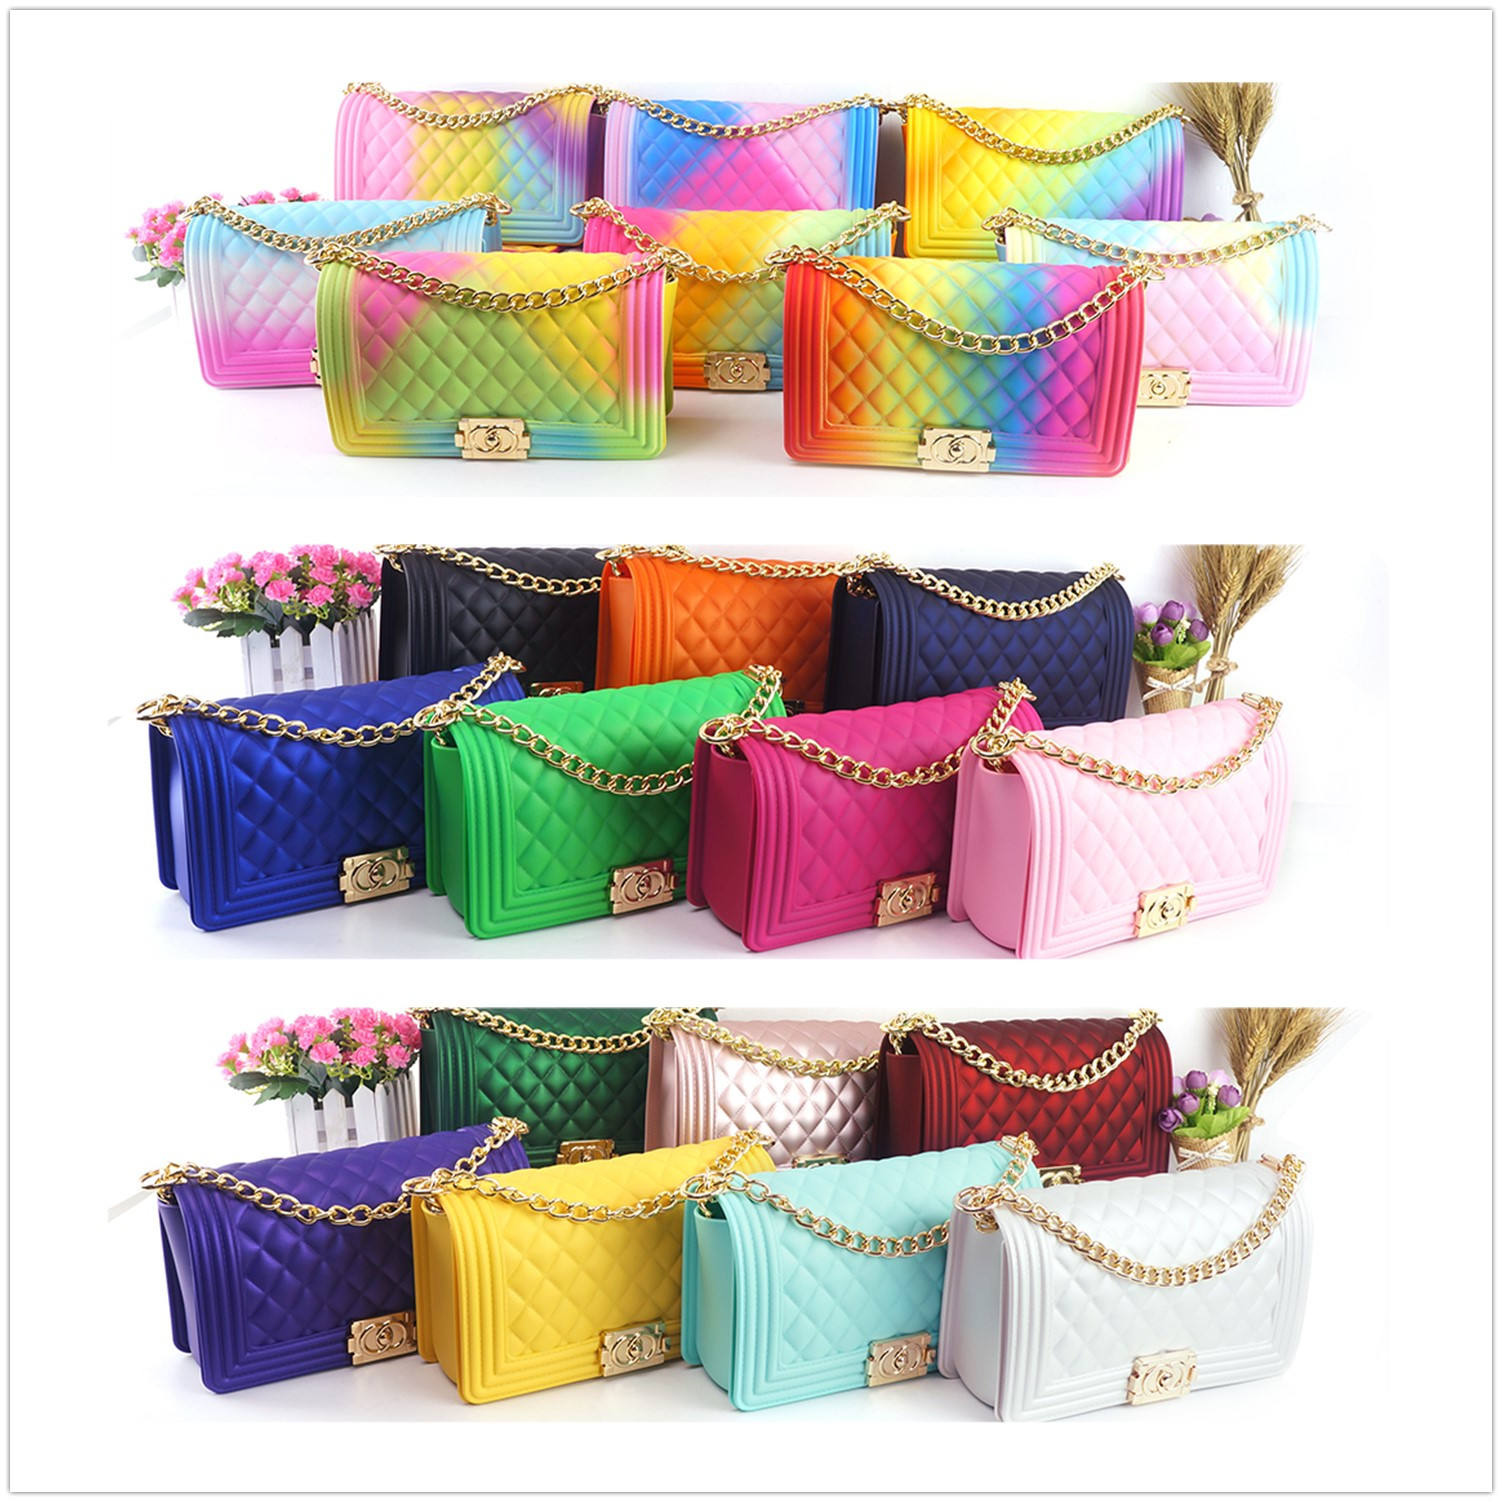 designer handbags famous brands ladies rainbow jelly purse silicone crossbody bags women handbags ready to ship